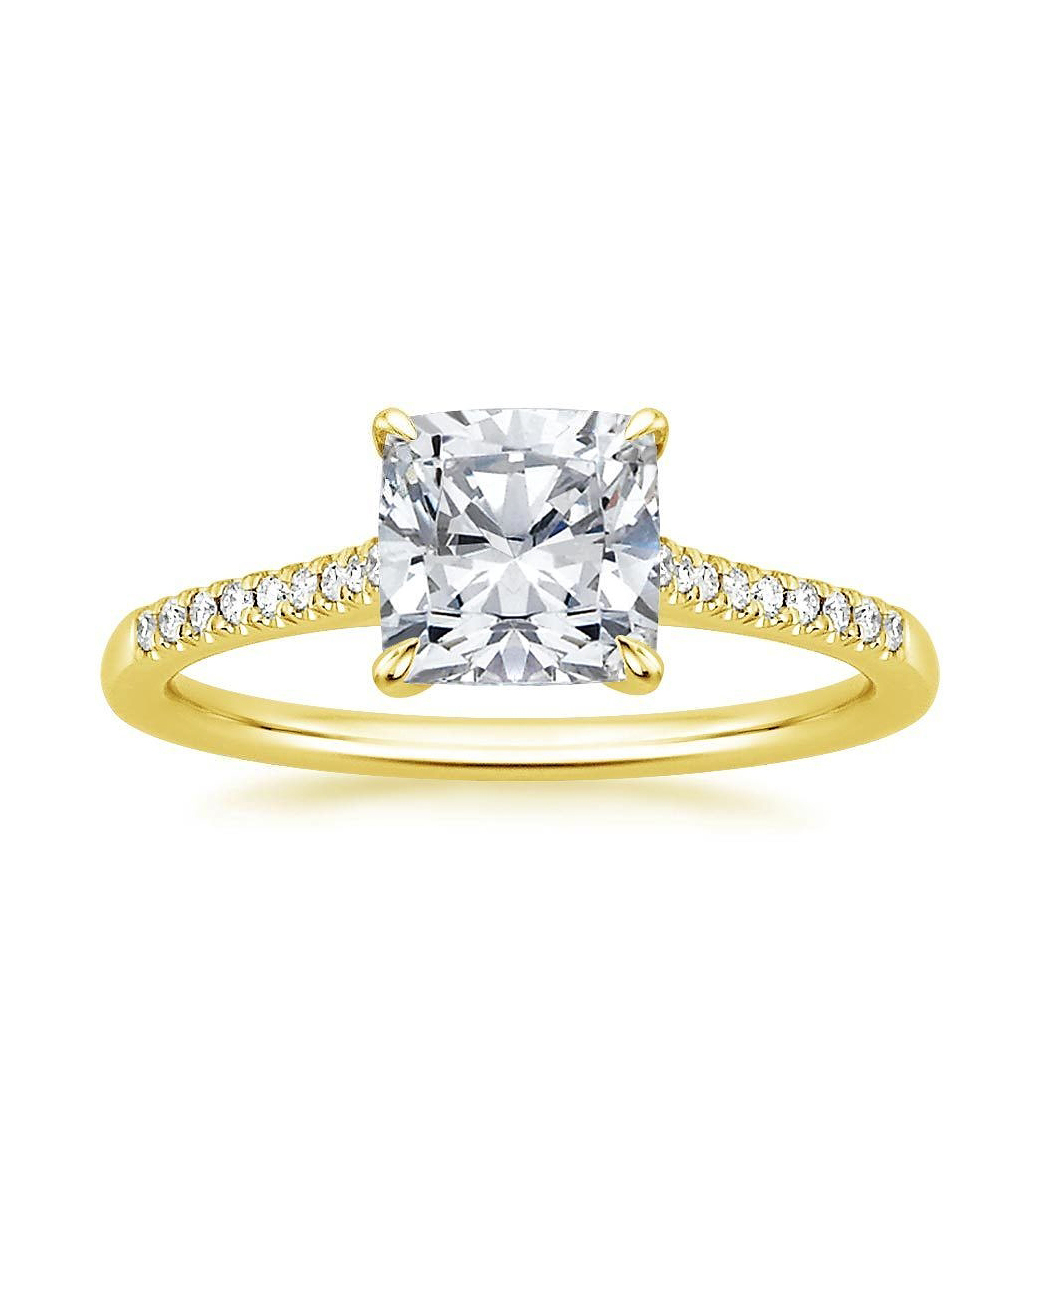 brilliant-earth-lissome-yellow-gold-square-diamond-engagement-ring-0816.jpg